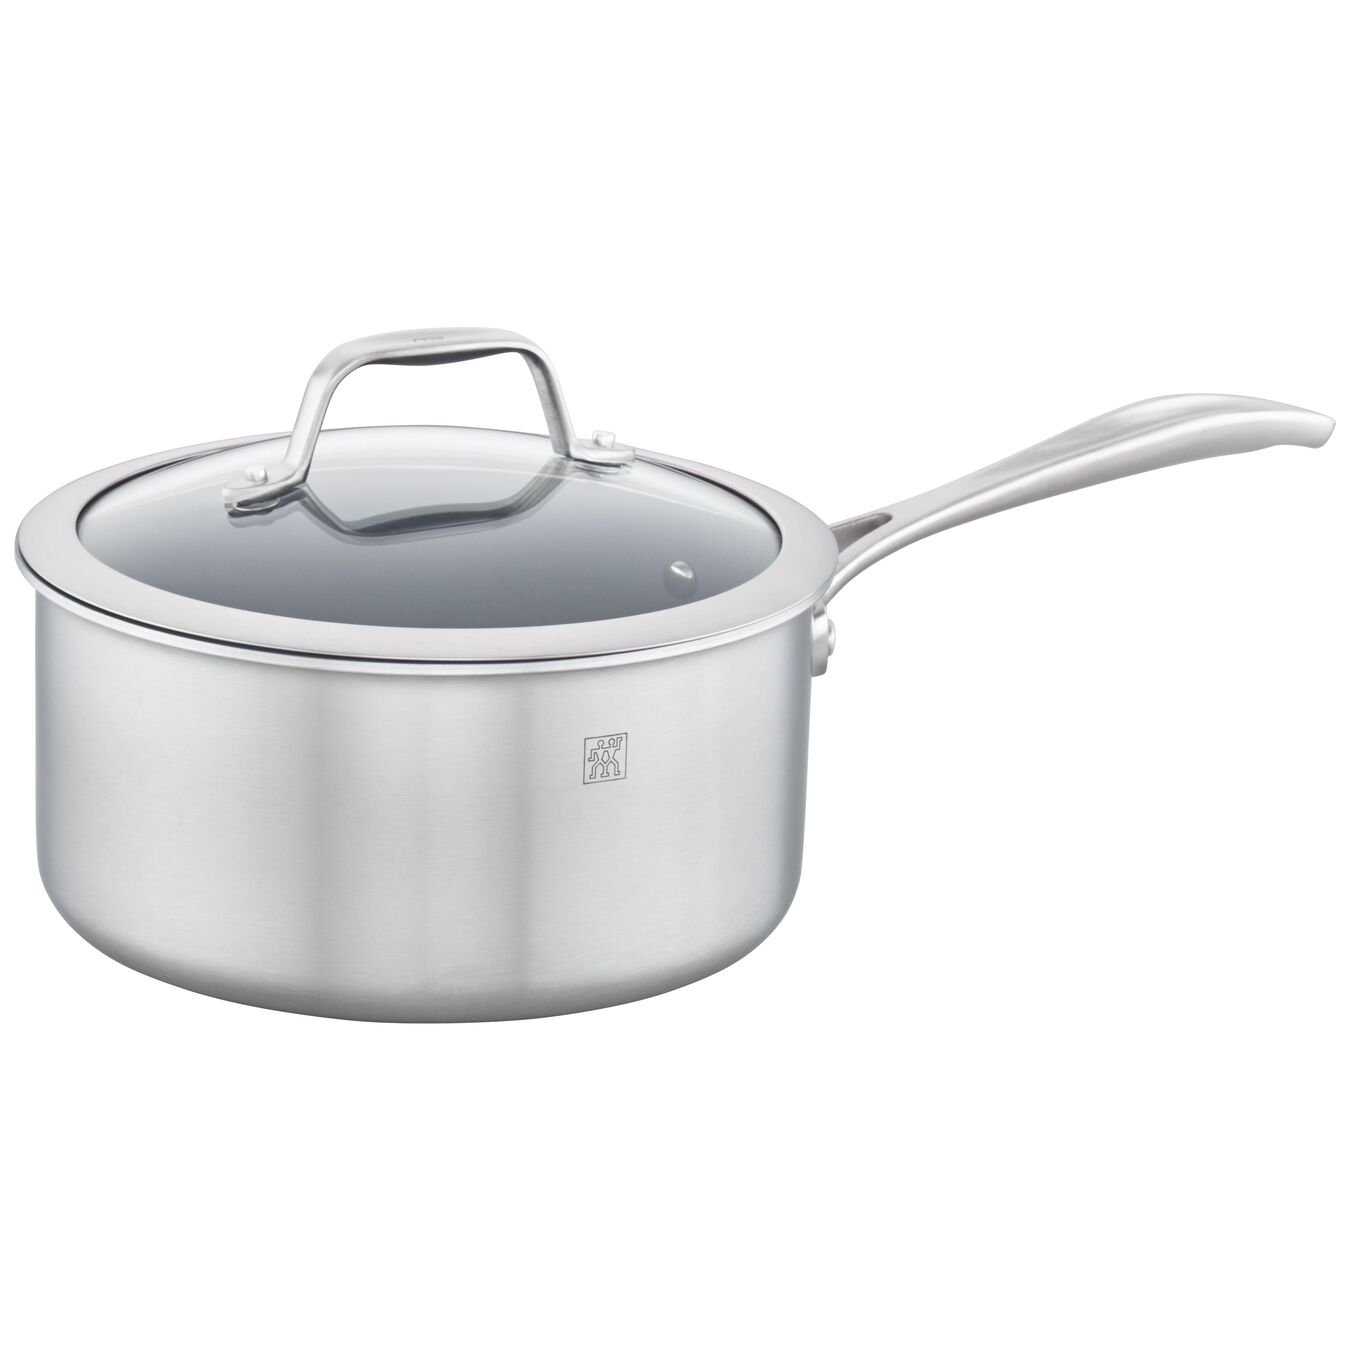 3 qt Sauce pan, 18/10 Stainless Steel ,,large 1